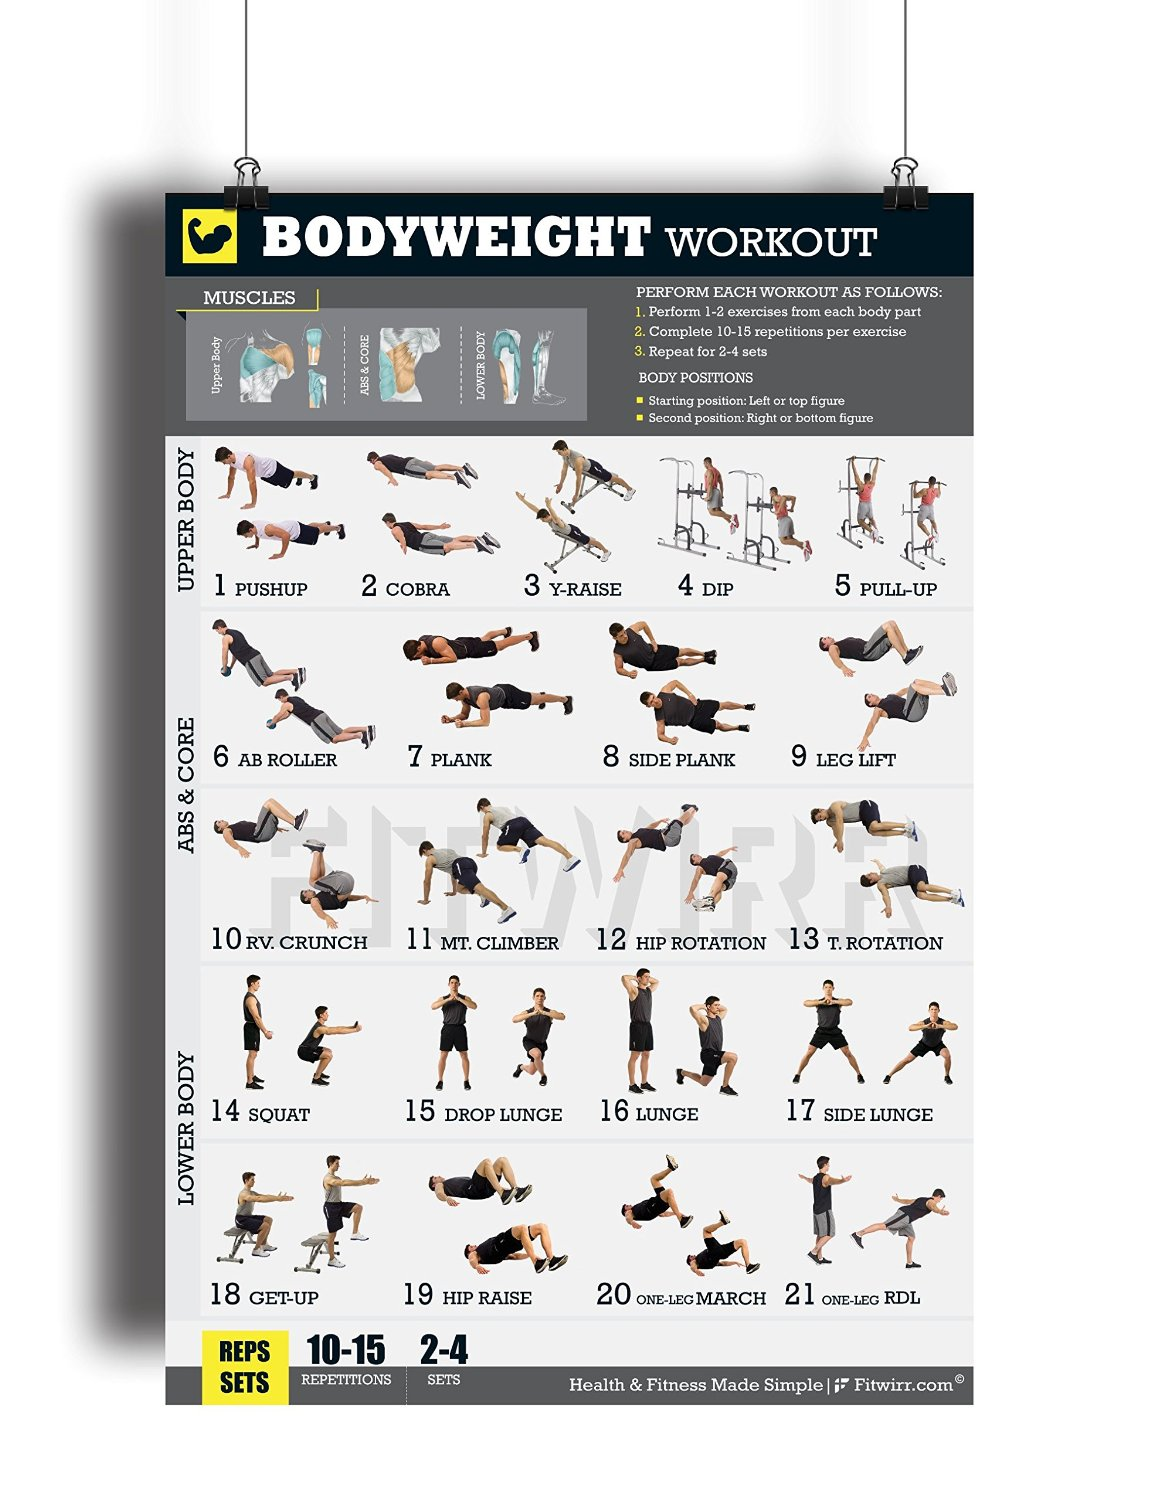 b170e38aa64 Buy Bodyweight Workout Exercise Poster NOW Laminated - Gain Strength ...